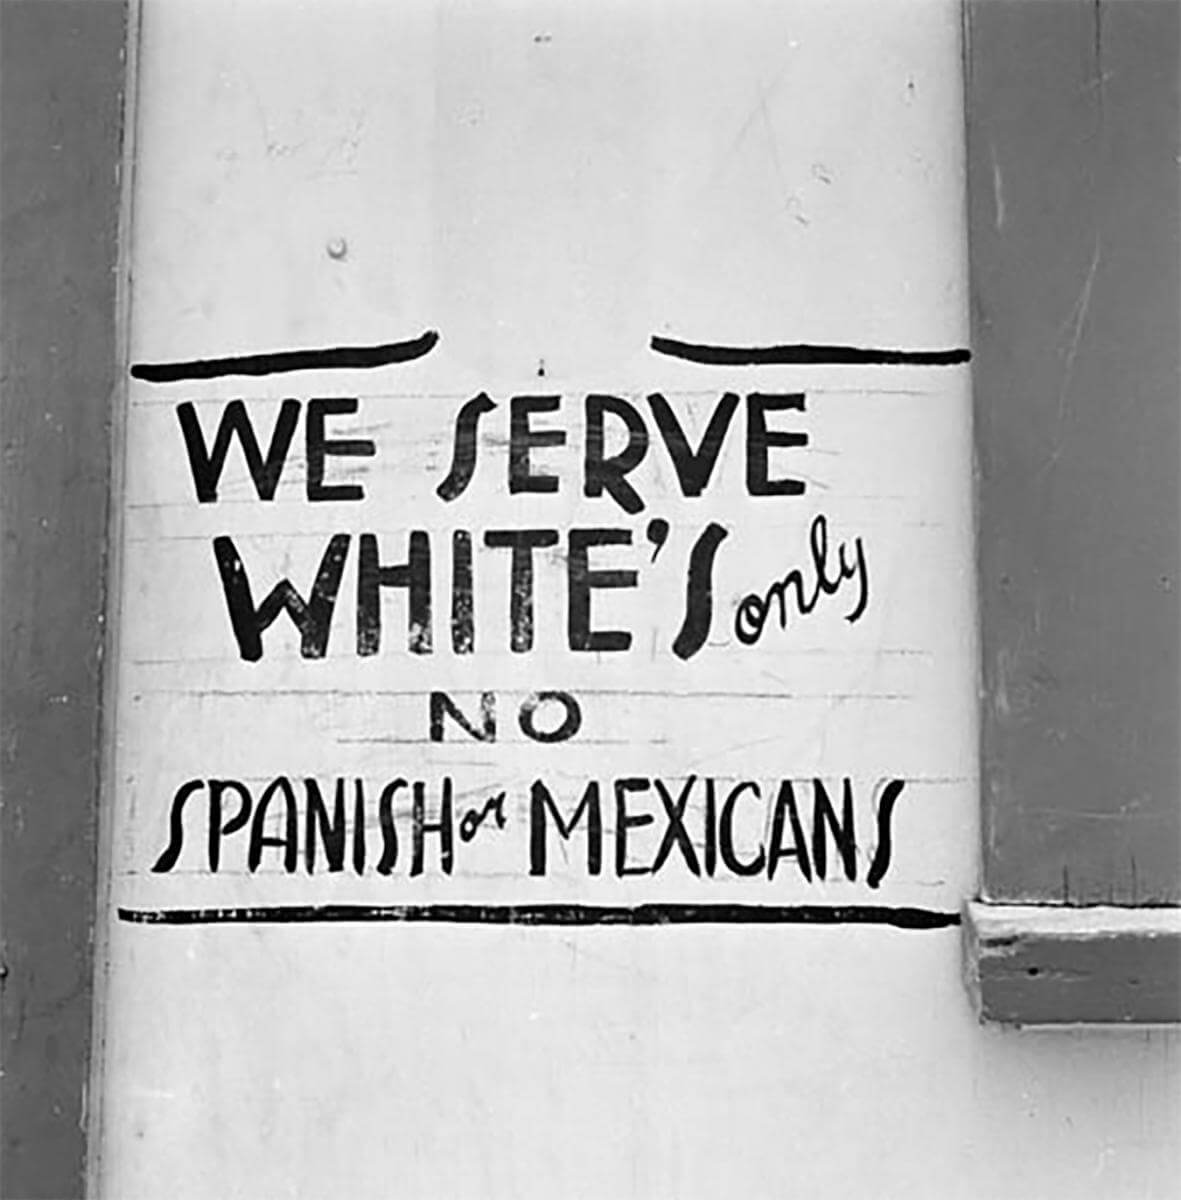 Discrimination sign, Dimmitt, Texas, 1949. Photograph by Russell Werner Lee. Courtesy of Dolph Briscoe Center for American History, University of Texas at Austin.